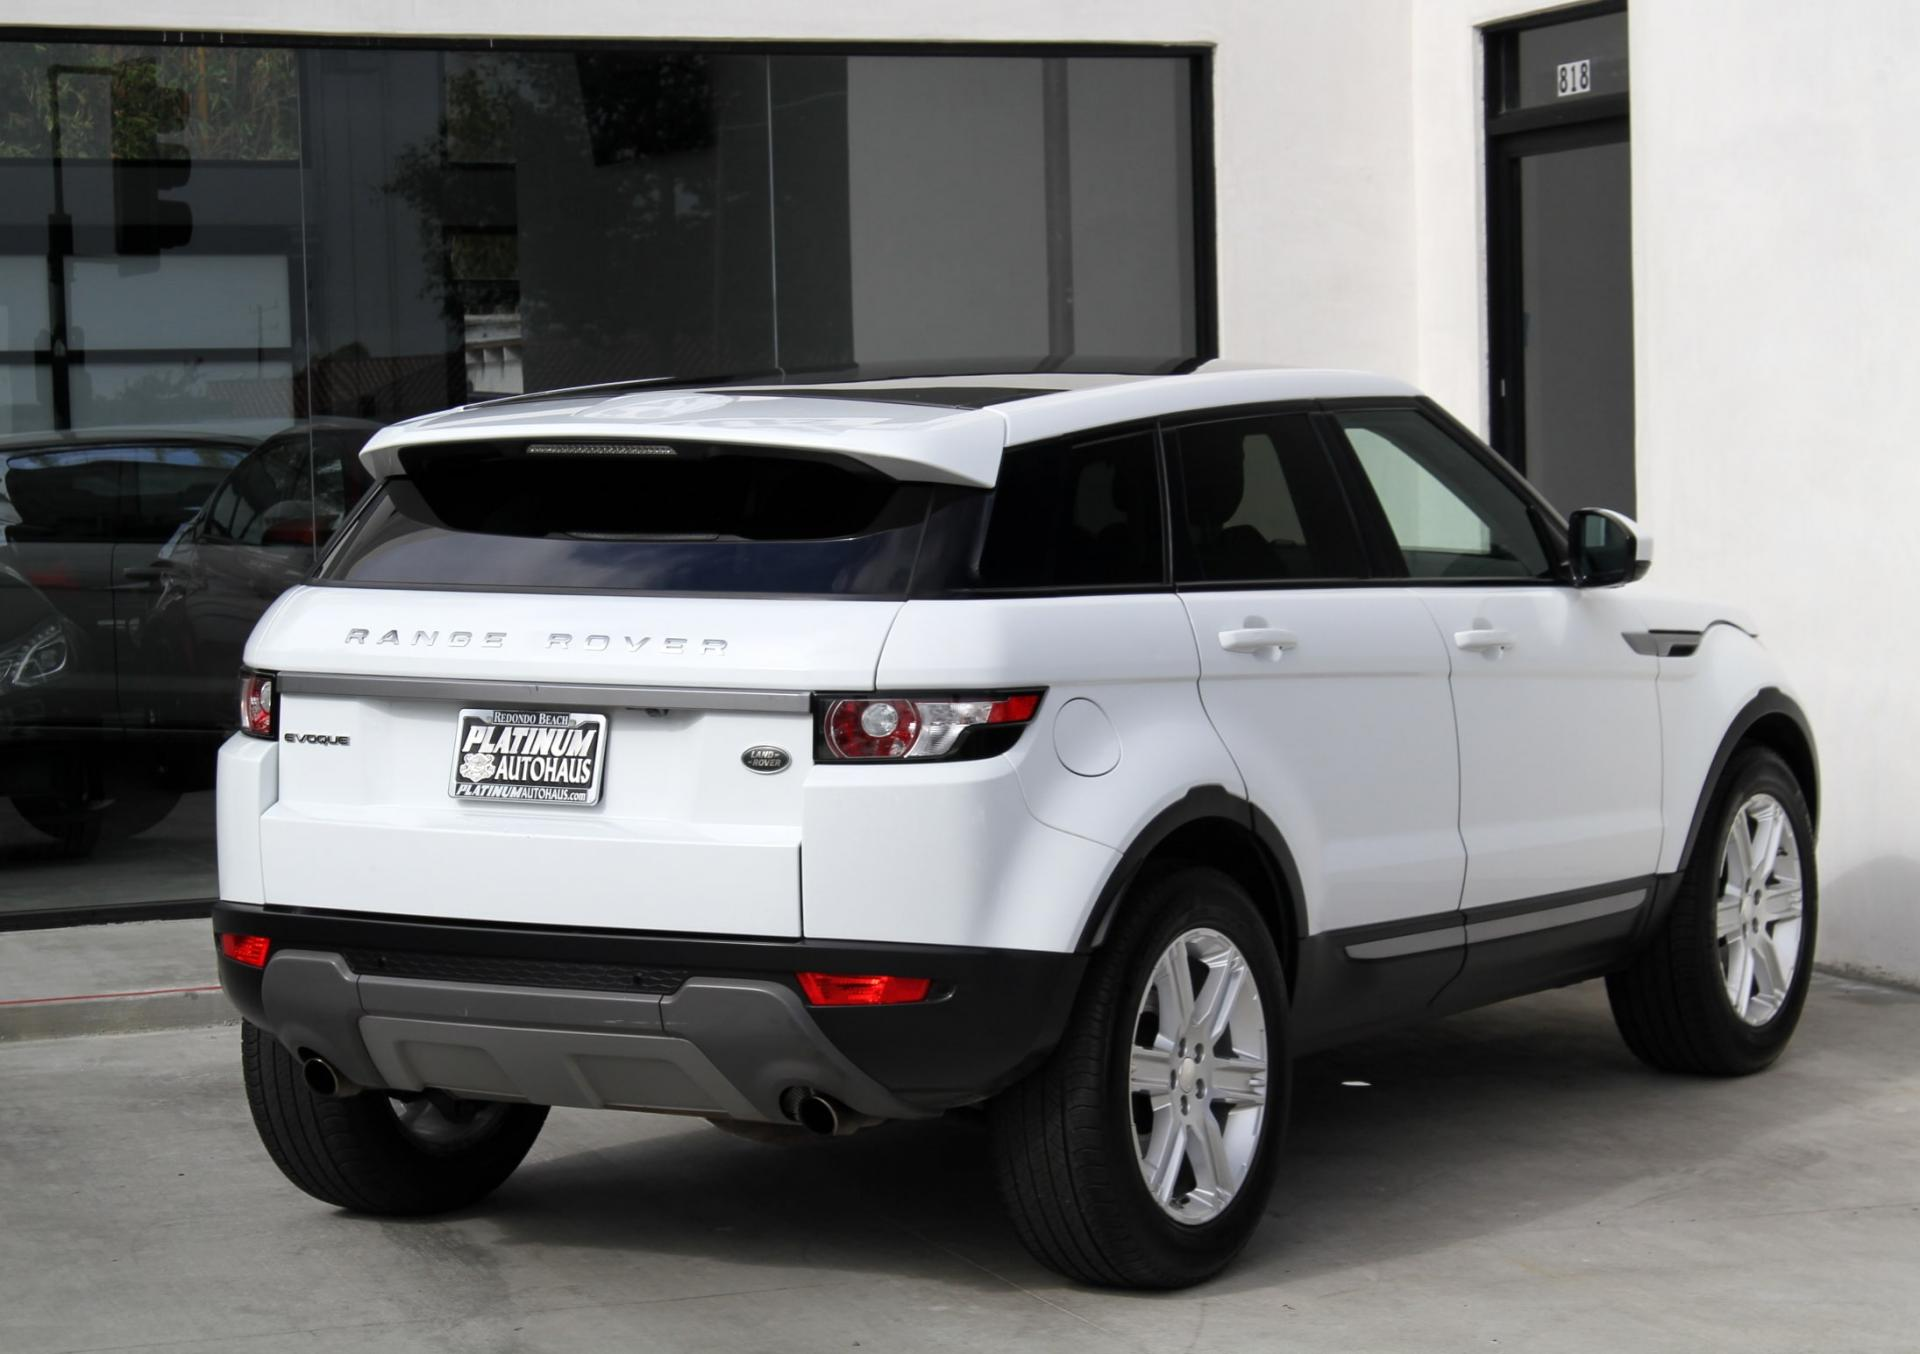 2014 land rover range rover evoque pure plus stock 5881 for General motors dealers near me